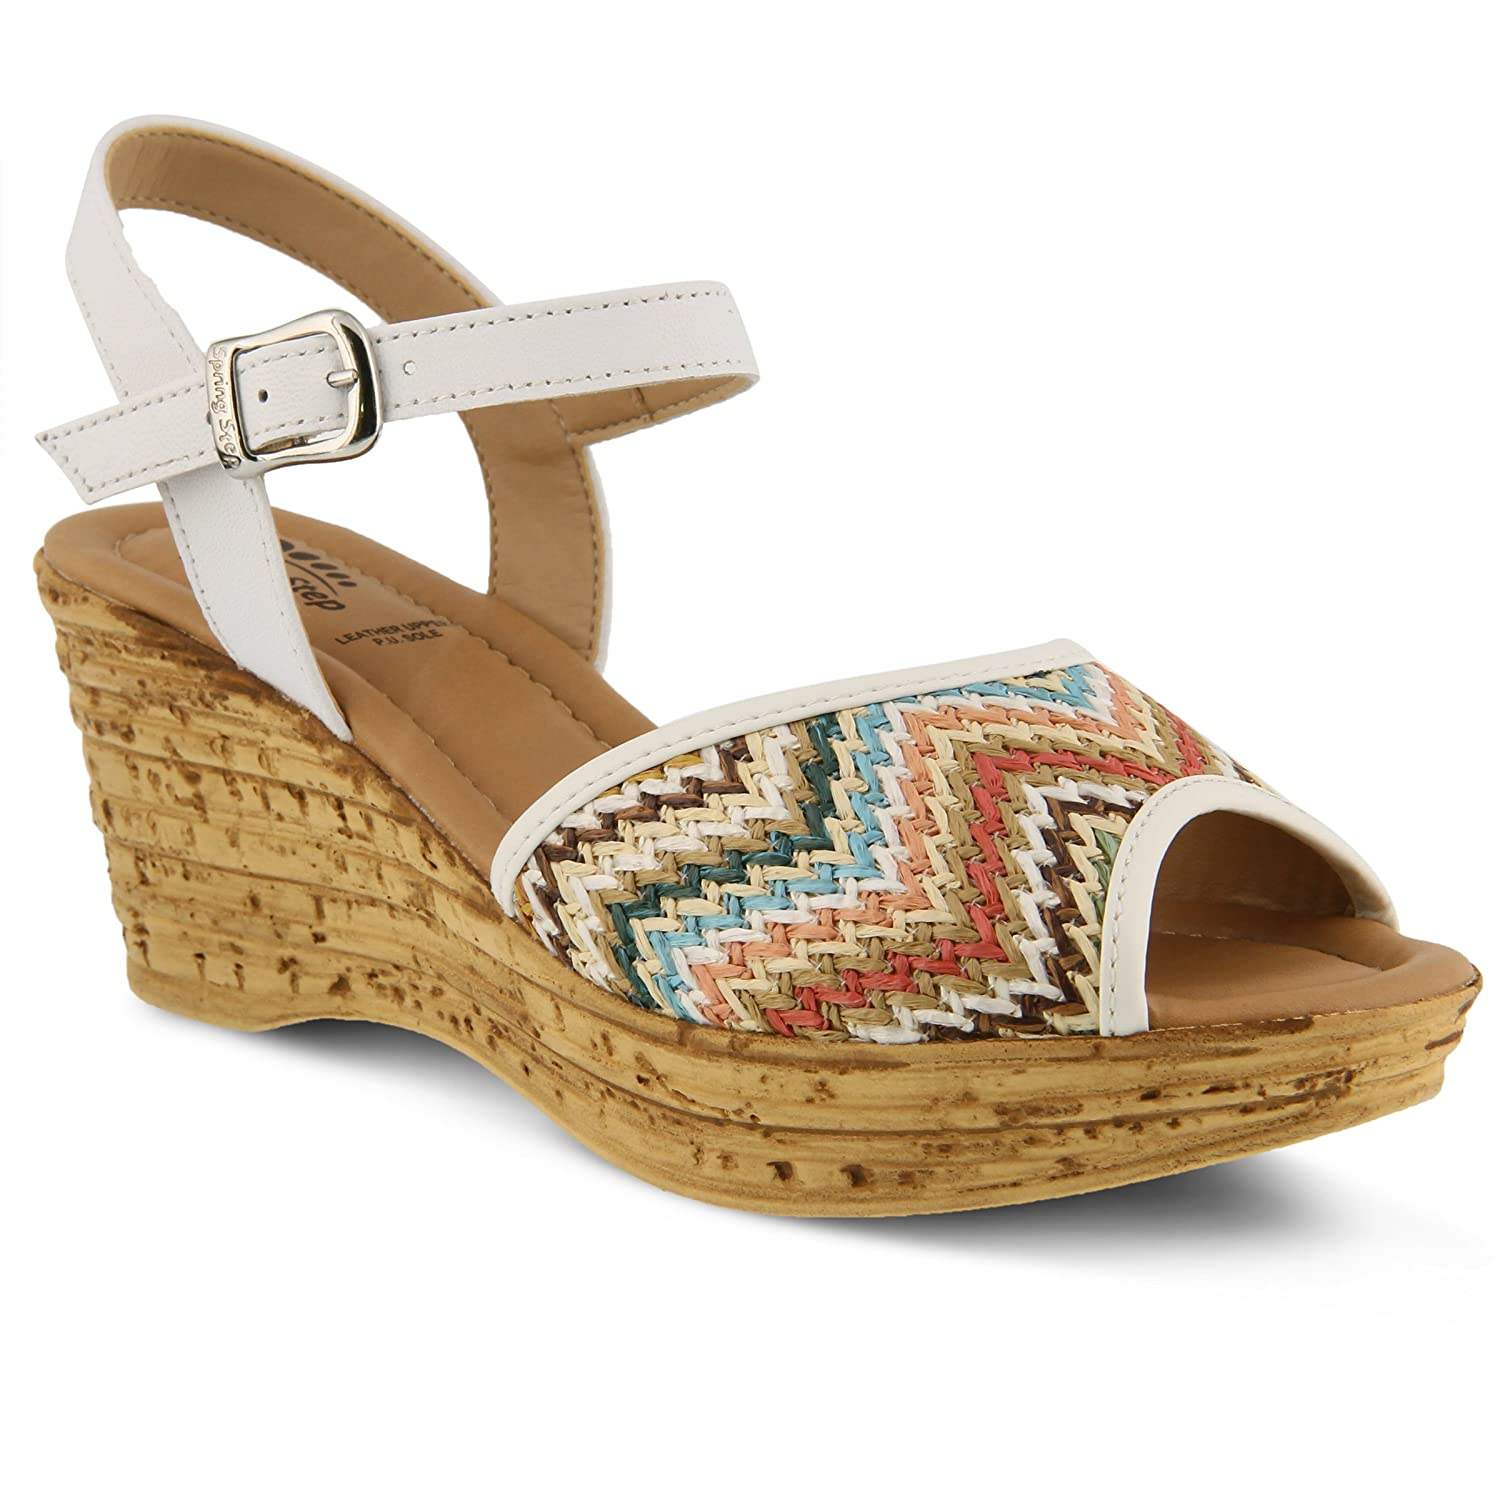 Spring Step Women's Allenisa Wedge Sandal B01MSP57IL 40 M EU (US 9 US)|White Multi